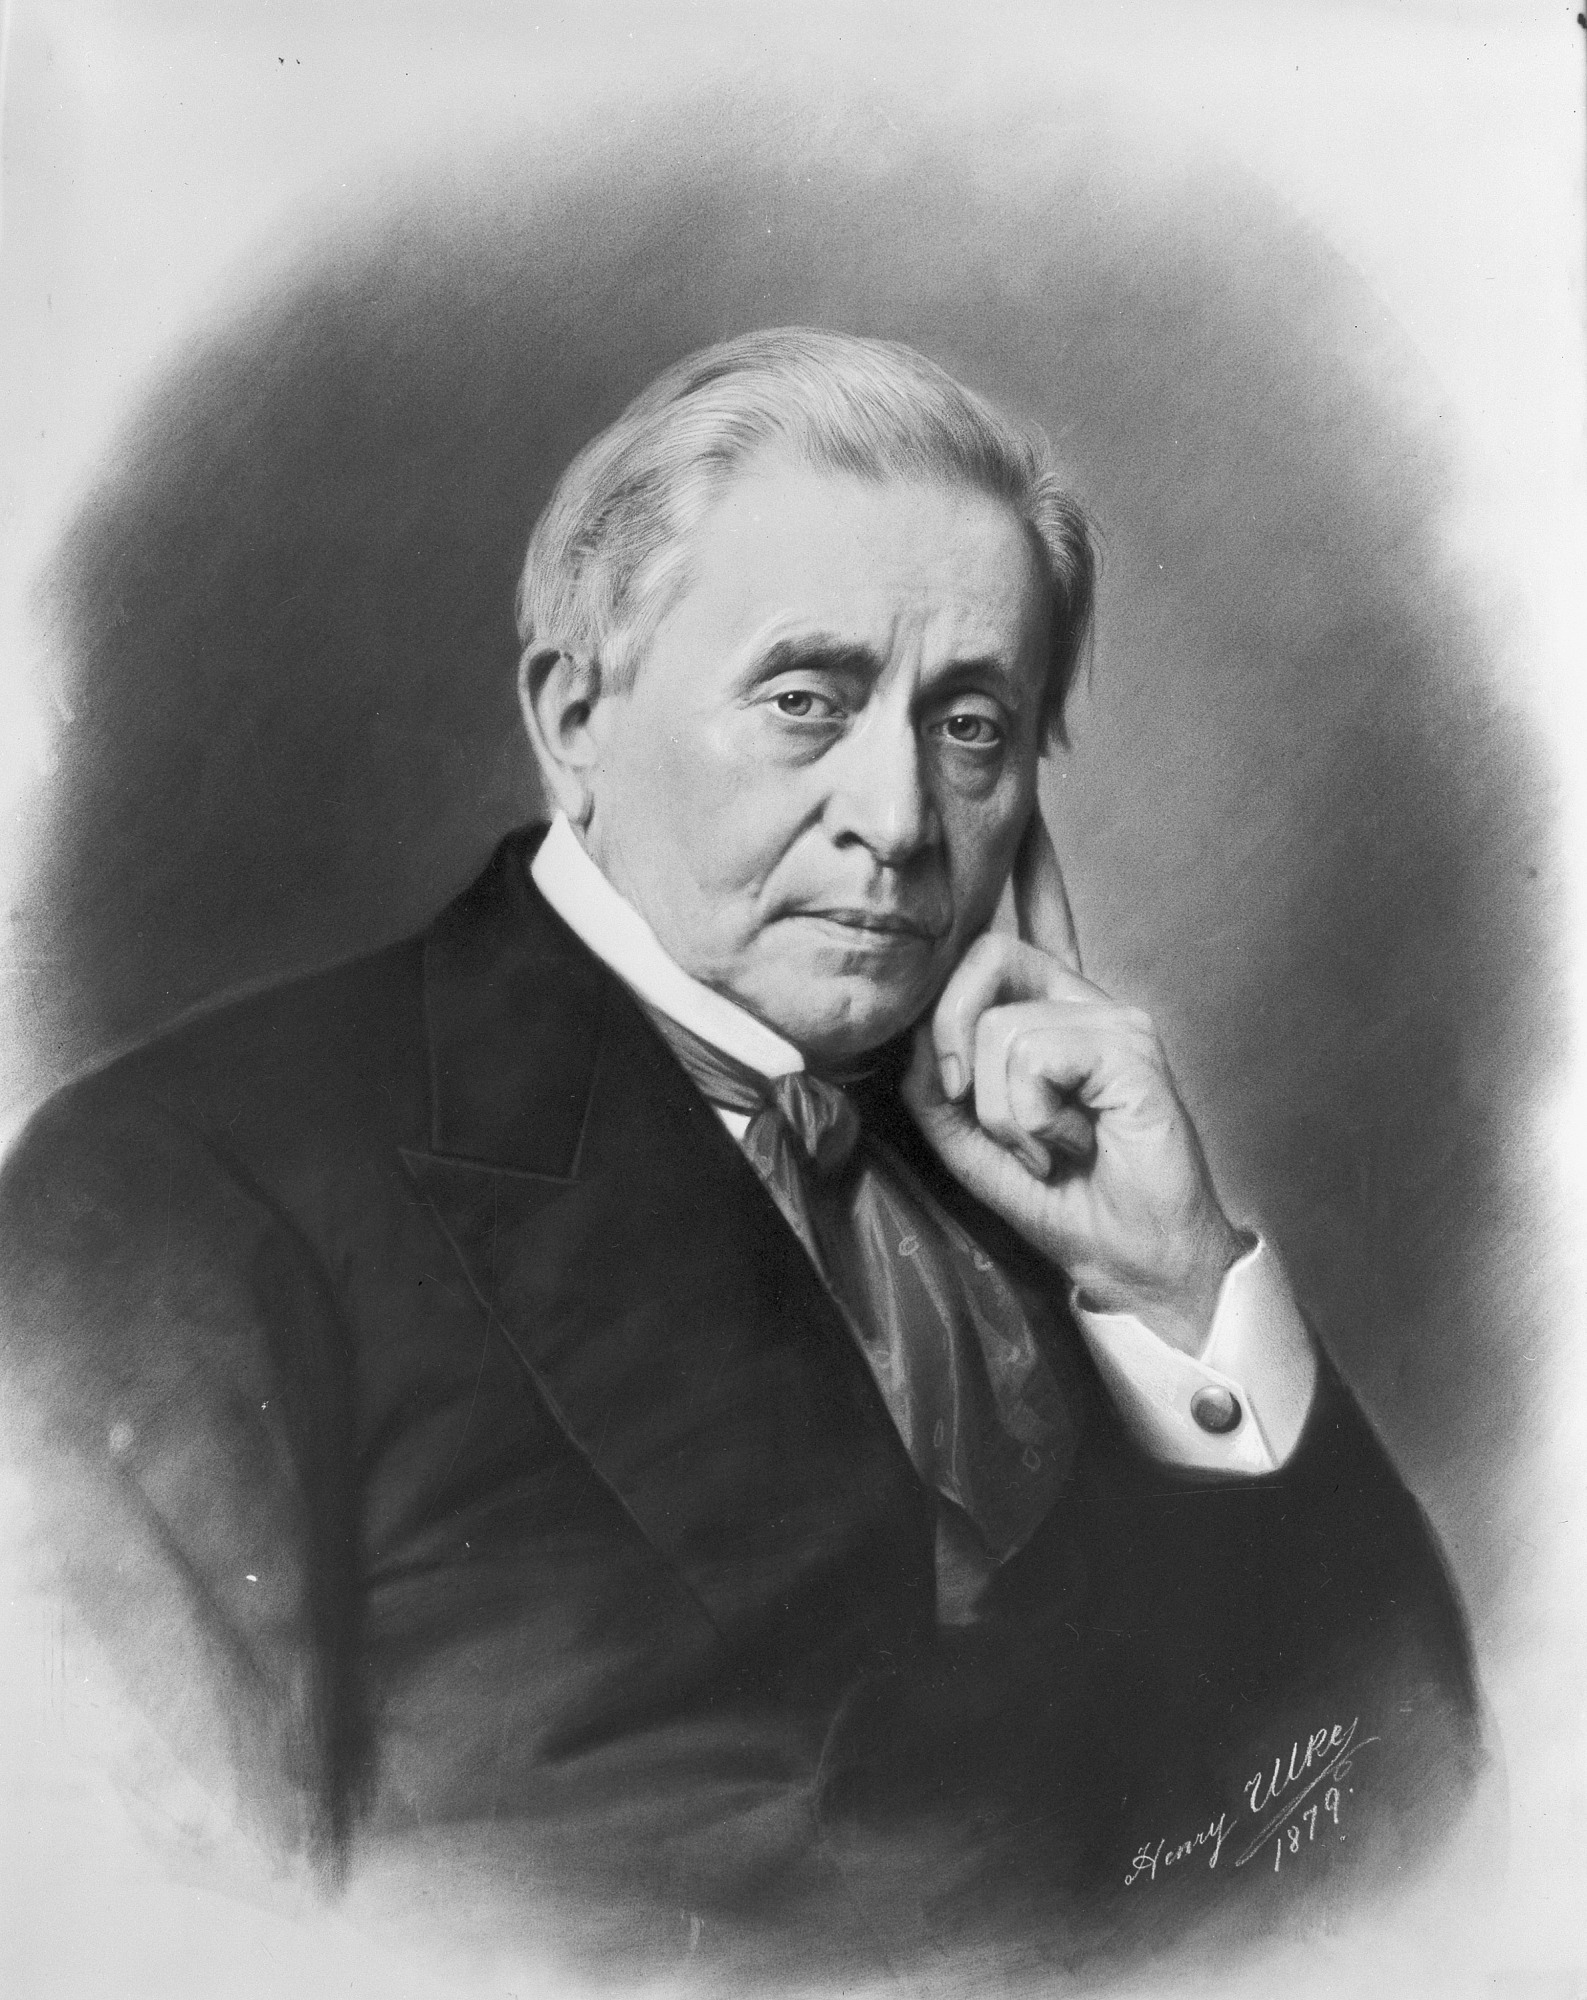 Joseph Henry Portrait, by Ulke, Henry, Smithsonian Archives - History Div, 10191or AI-10191.